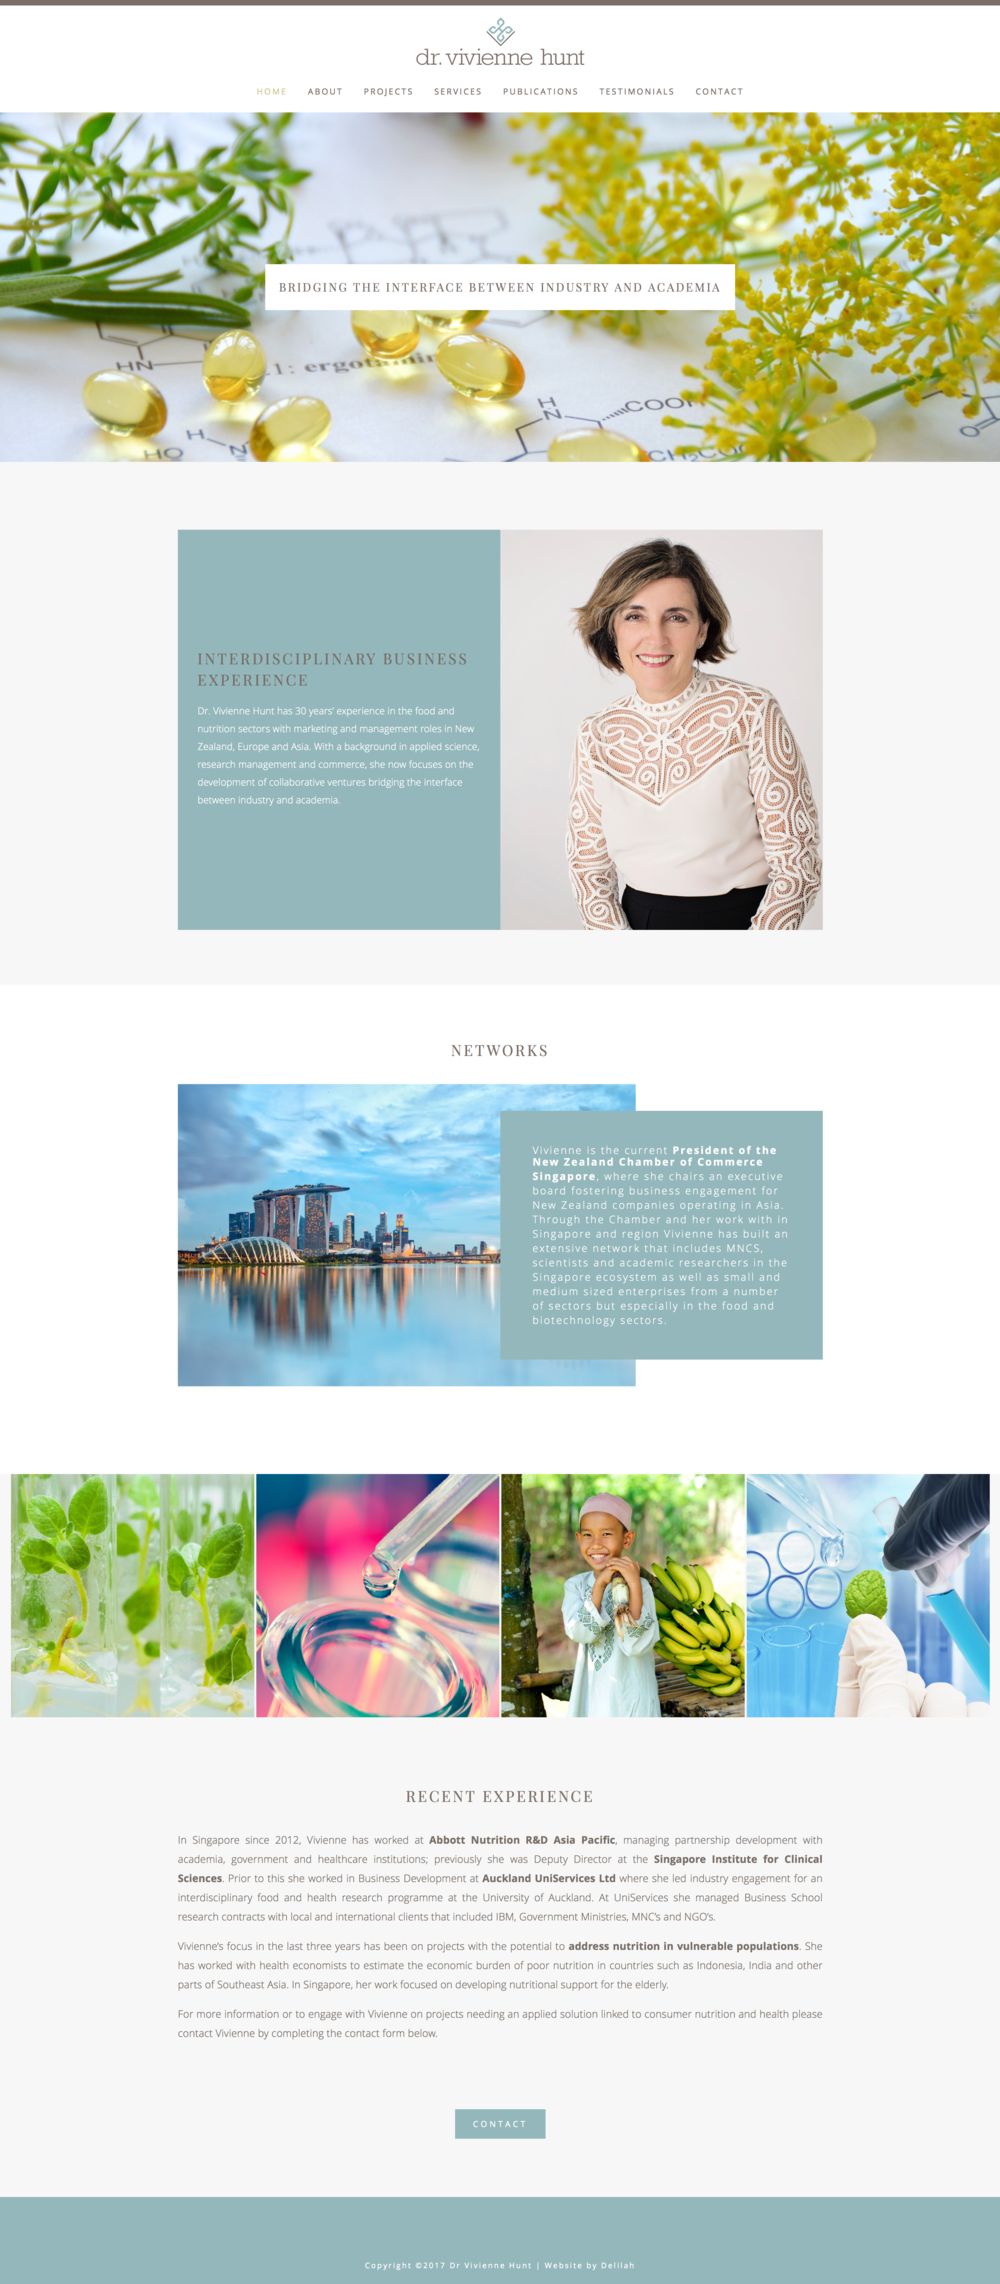 Logo Design & Squarespace Website for Dr. Vivienne Hunt by Delilah Creative | www.delilahcreative.com